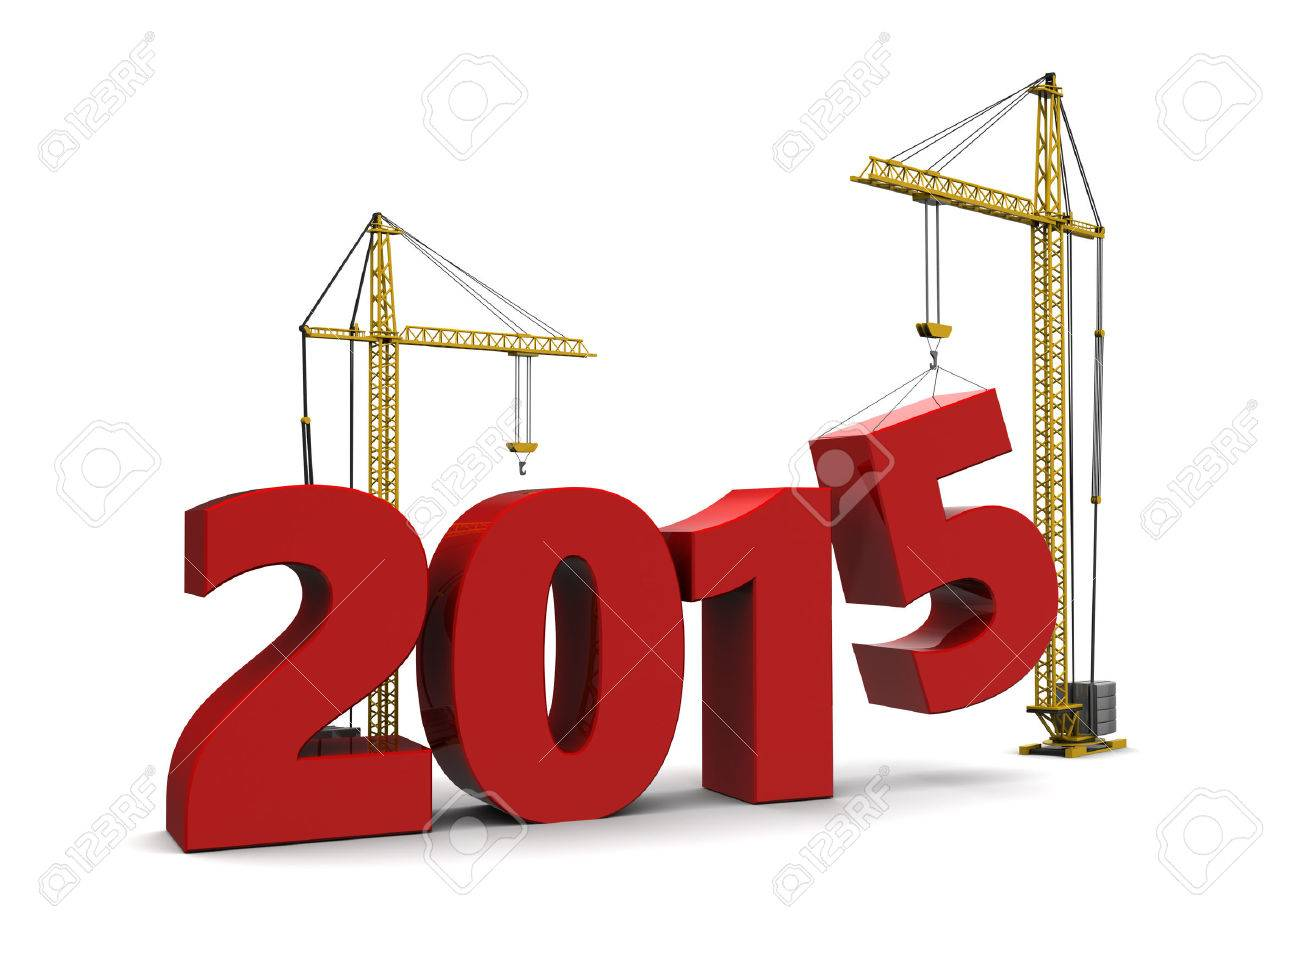 abstract 3d illustration of 2015 year sign built by cranes - 32289656